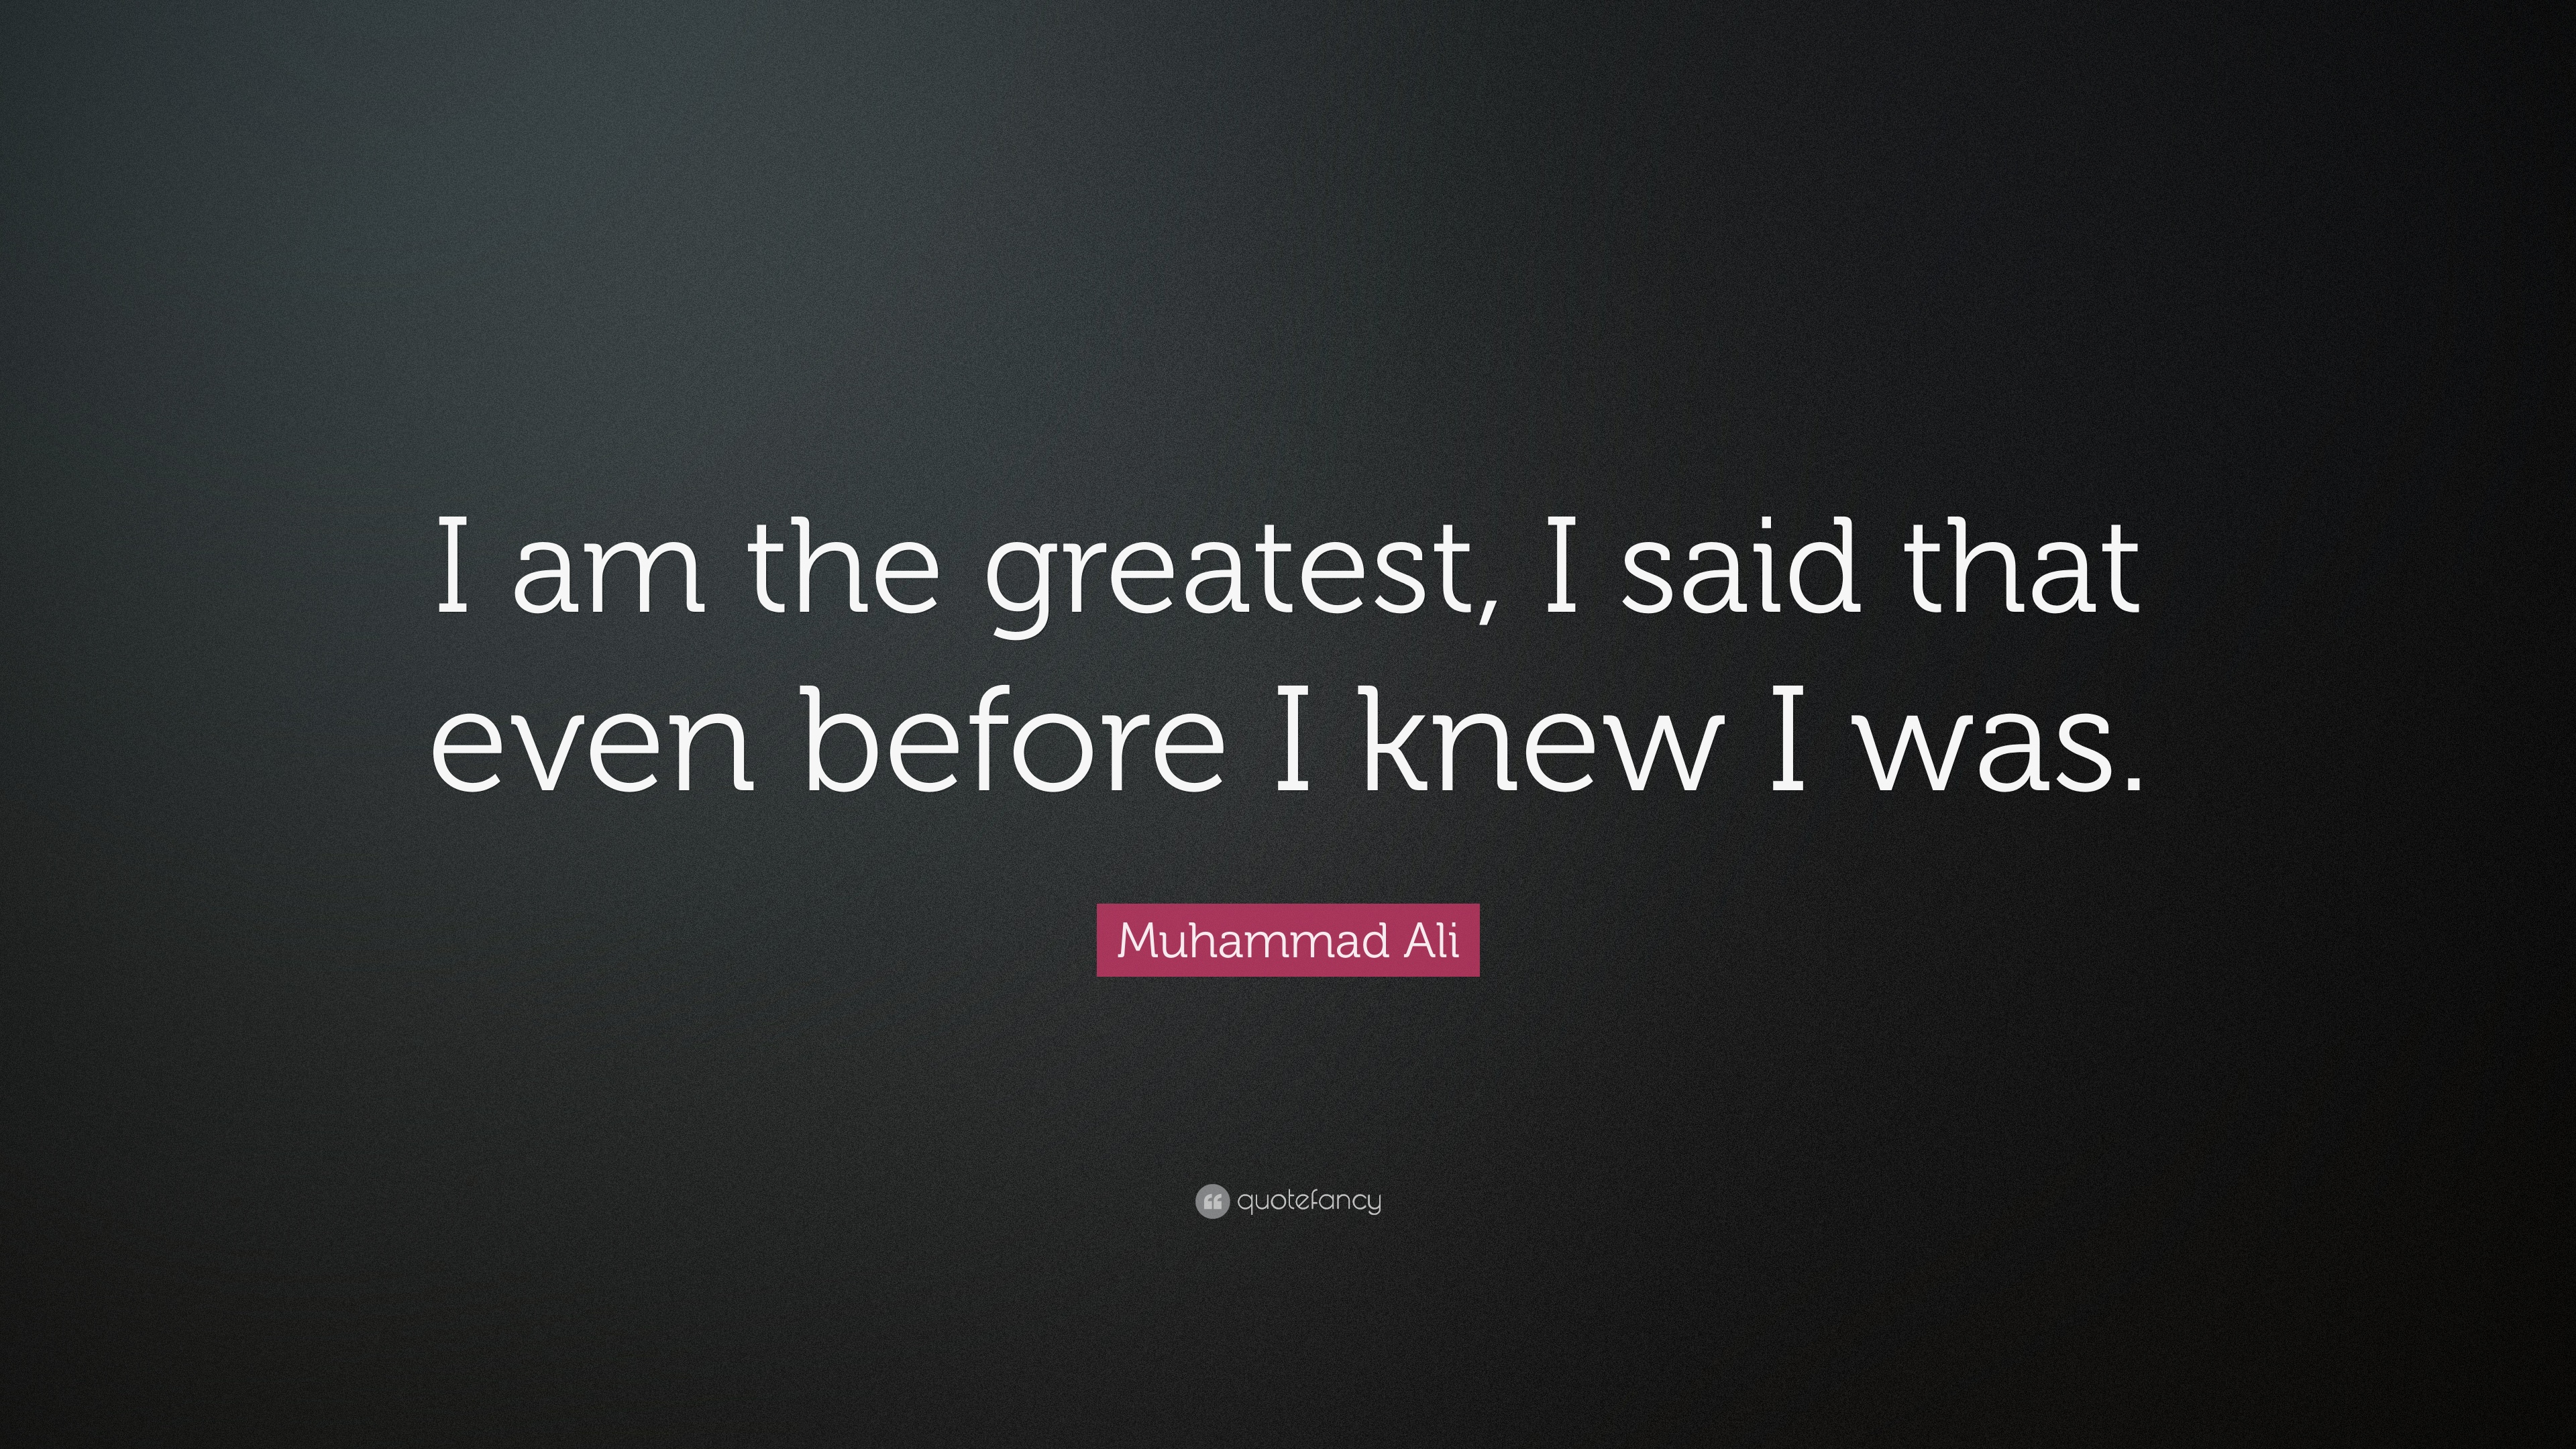 Good Positive Quotes: U201cI Am The Greatest, I Said That Even Before I Knew